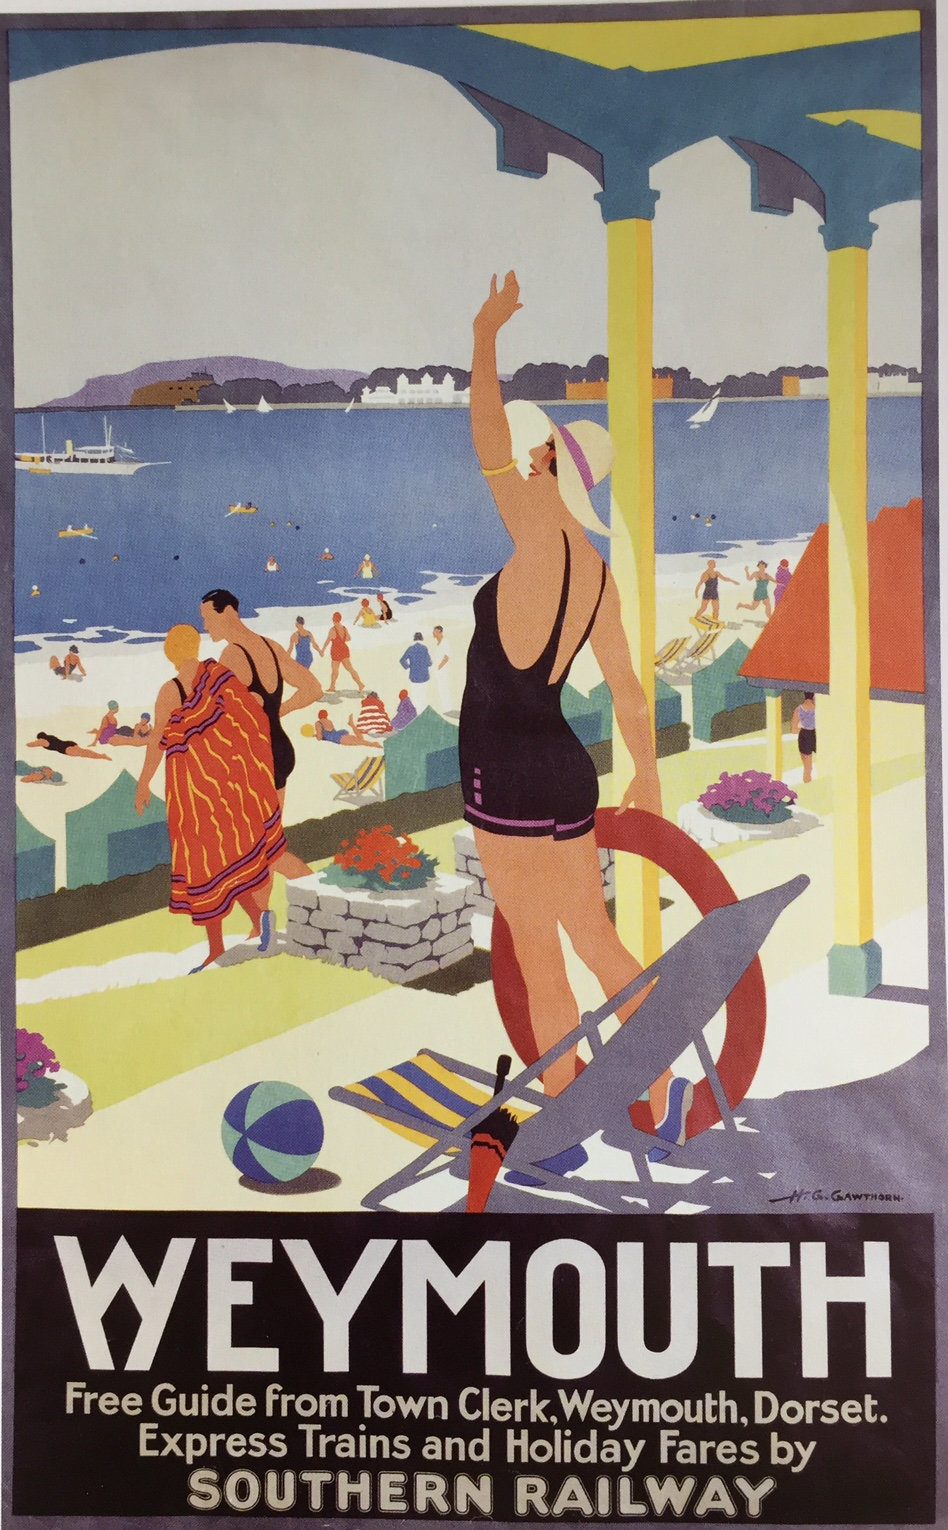 Henry George Gawthorn, Advert for Weymouth, 1931